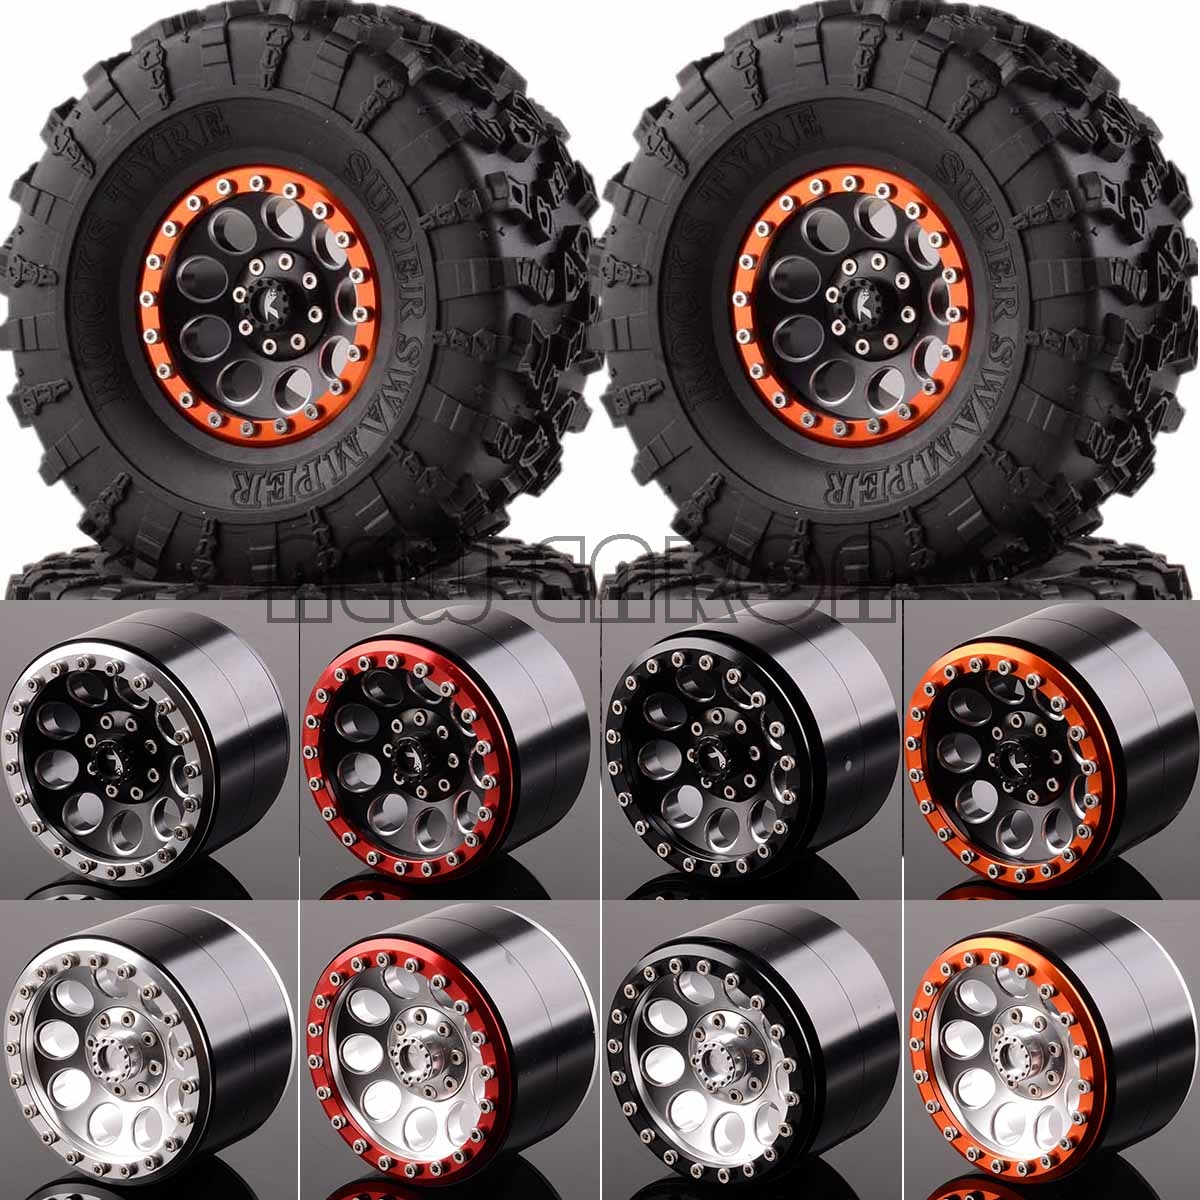 NEW ENRON Aluminum 2.2 Beadlock Wheels & TIRES 2020-3022 FOR Axial Yeti/Wraith RC Crawler mxfans rc 1 10 2 2 crawler car inflatable tires black alloy beadlock pack of 4